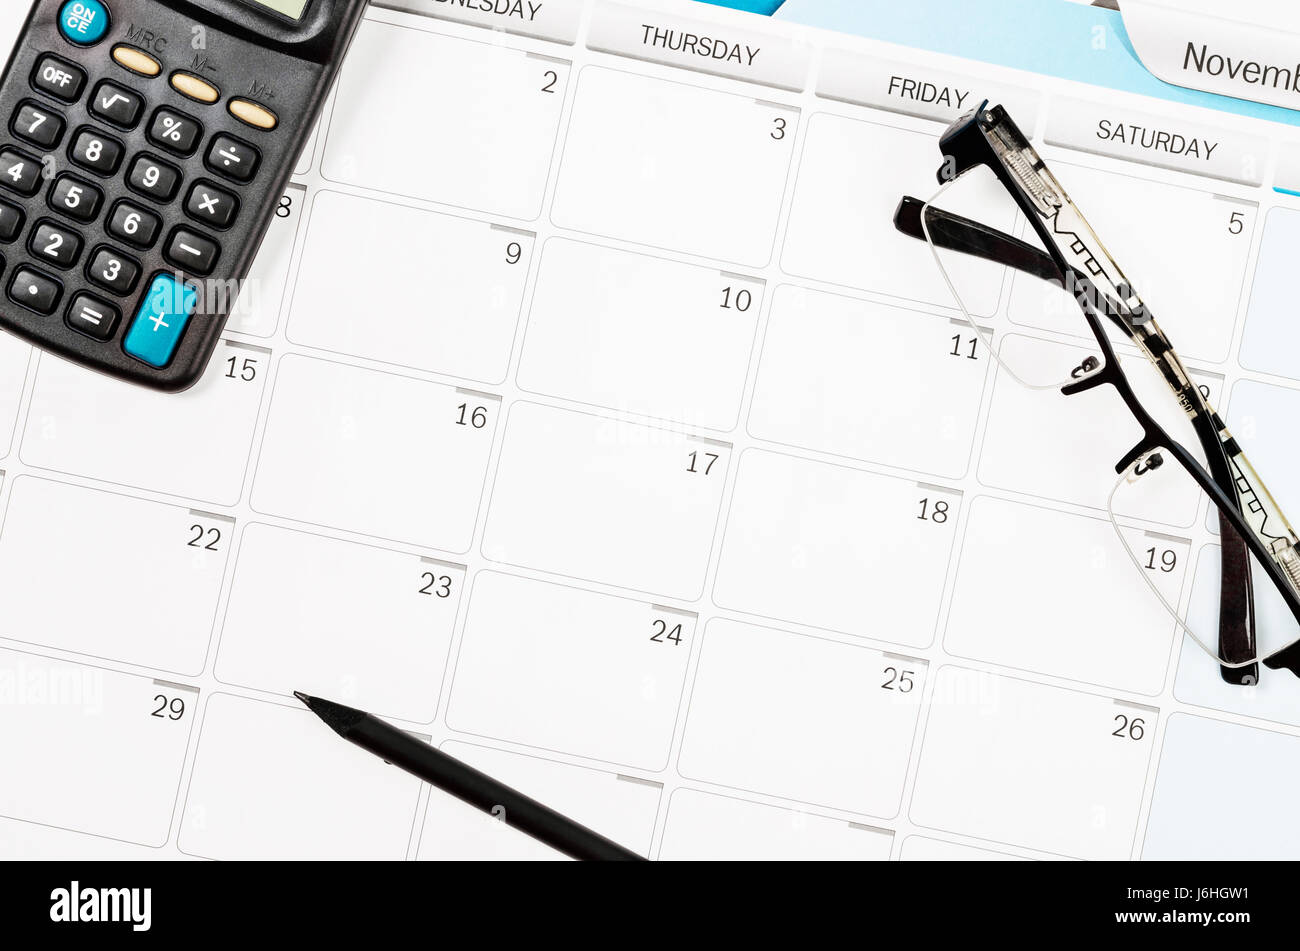 calendar schedule on work table and calculator pencil eye glasses